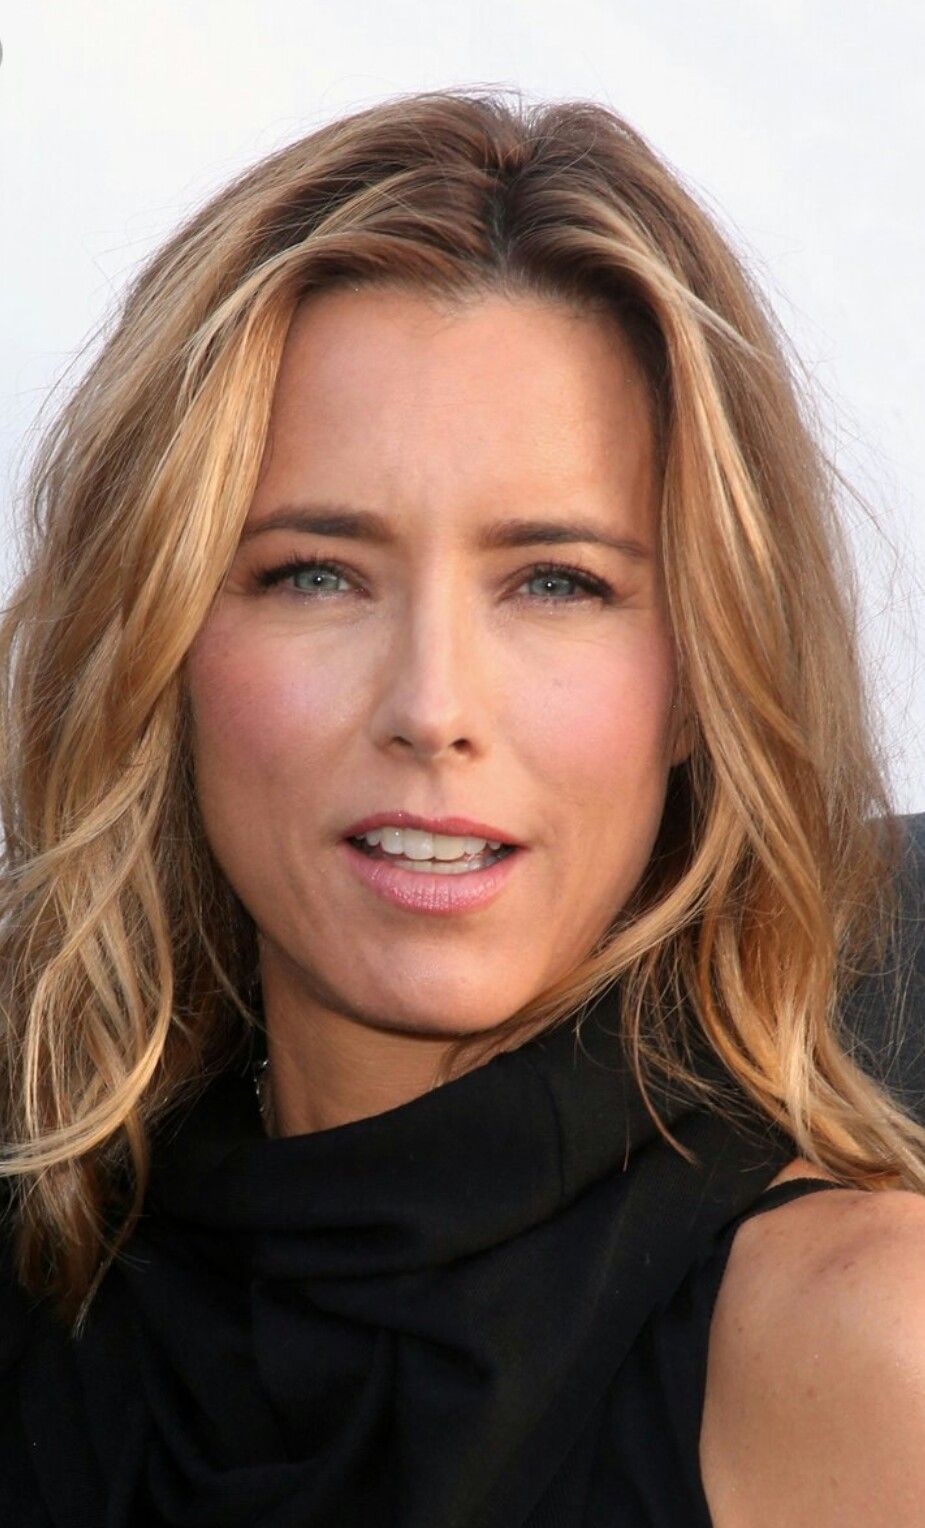 2019 Tea Leoni naked (65 photo), Tits, Sideboobs, Selfie, butt 2019